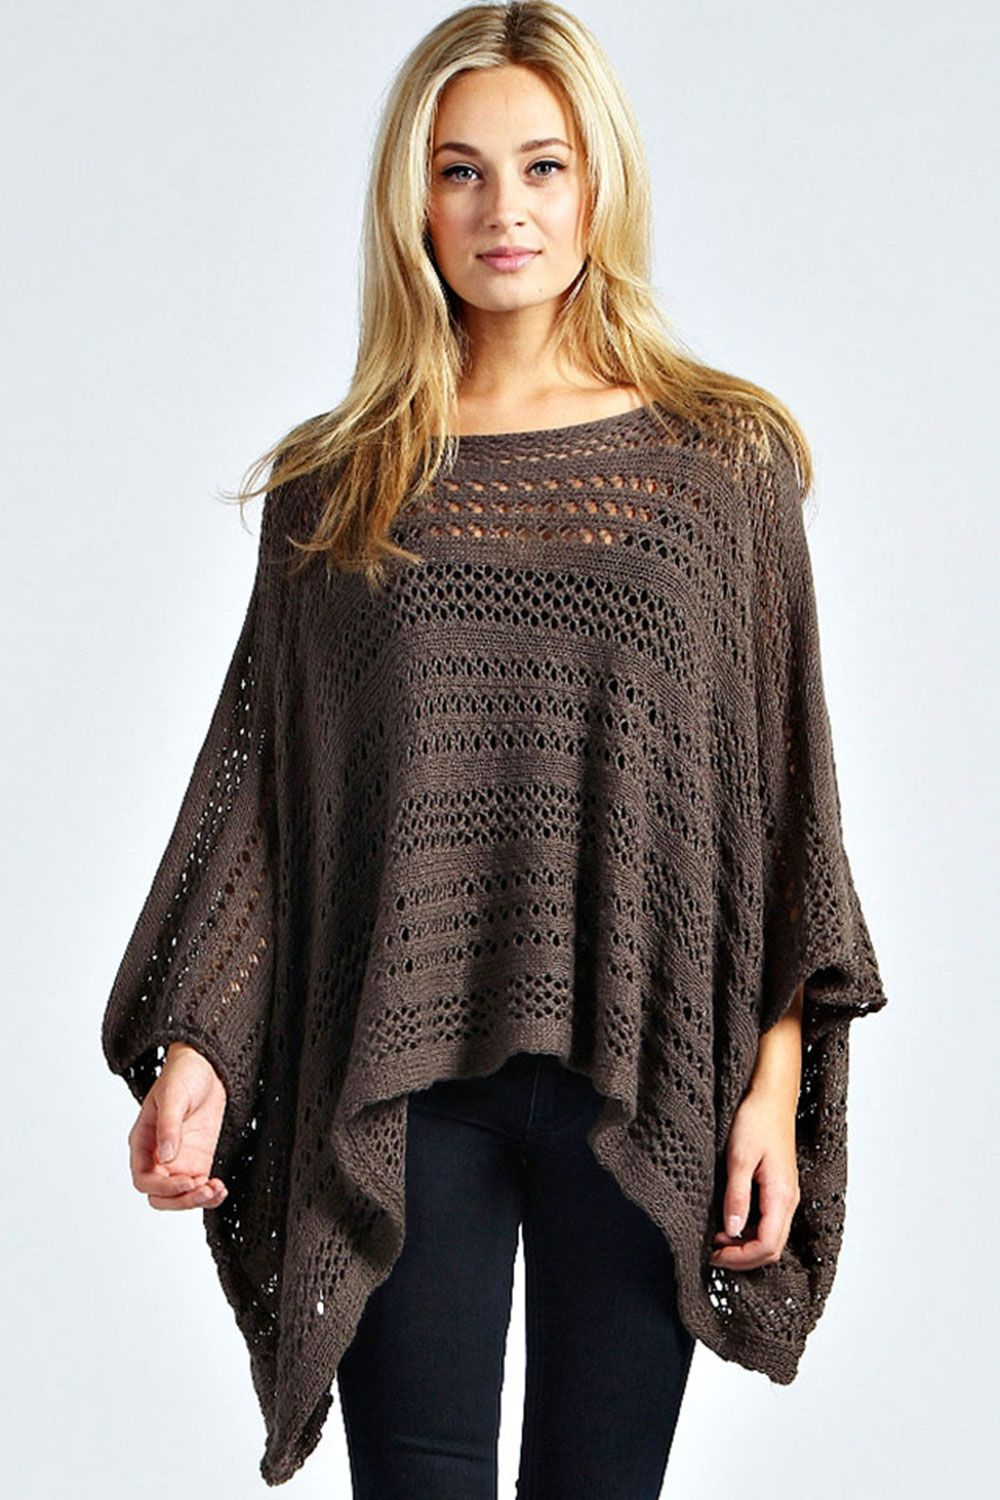 Knitted Ponchos for men and women. Disposable Rain Ponchos for All ...